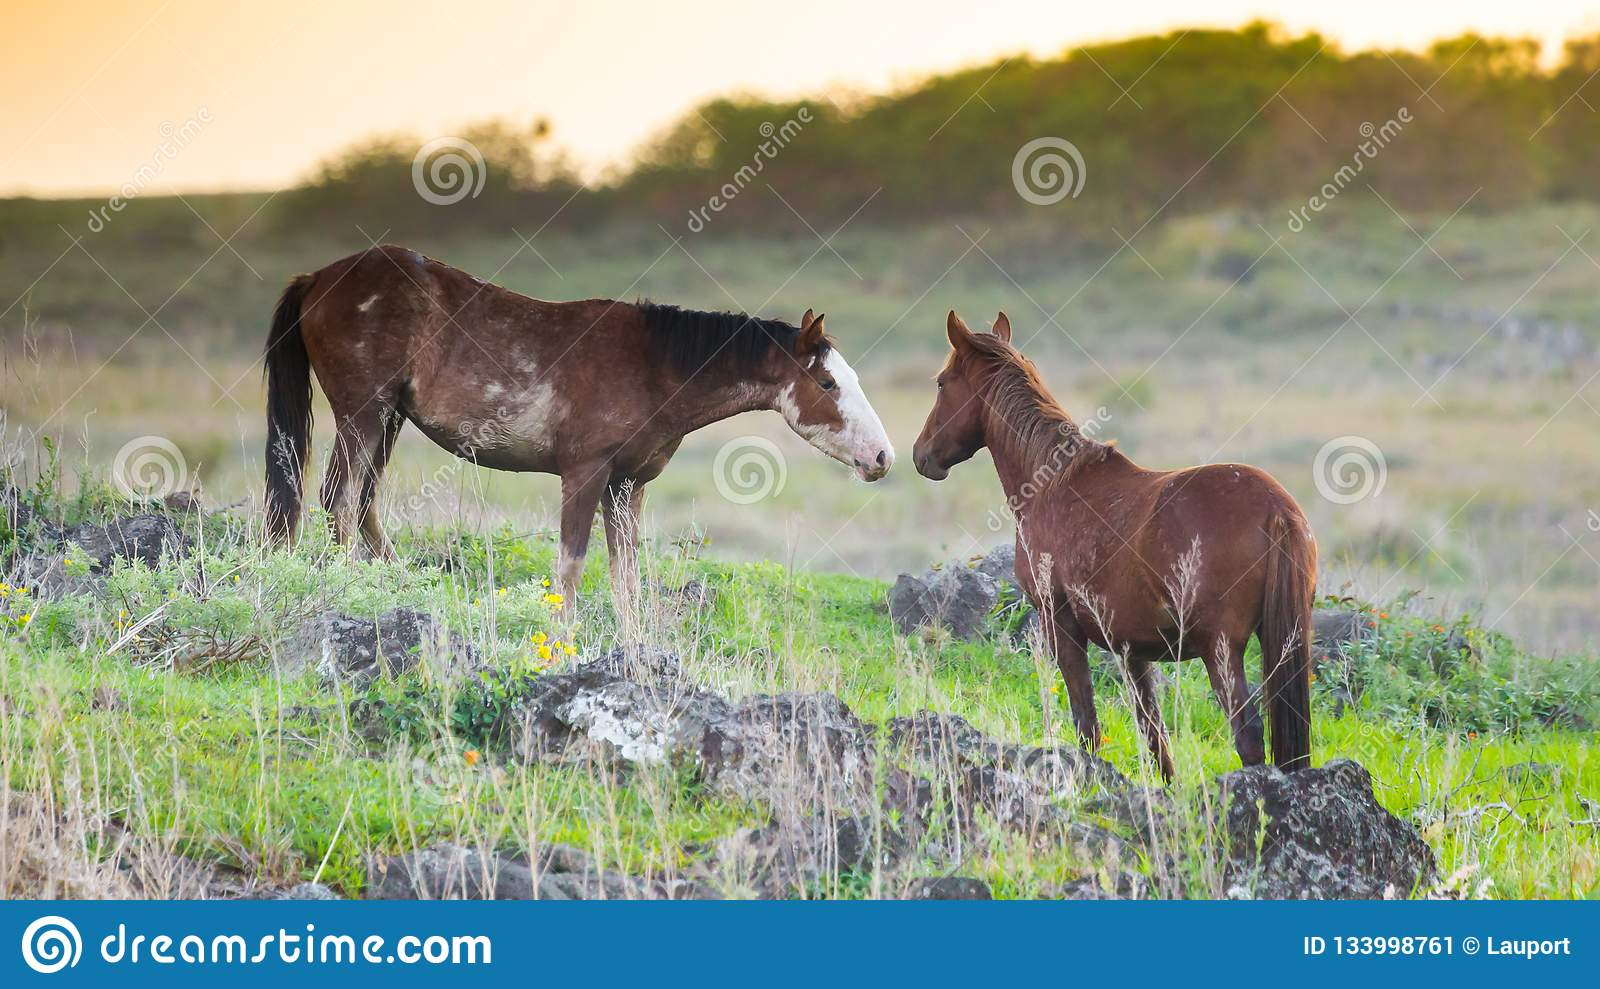 Horses greeting each other Easter Island